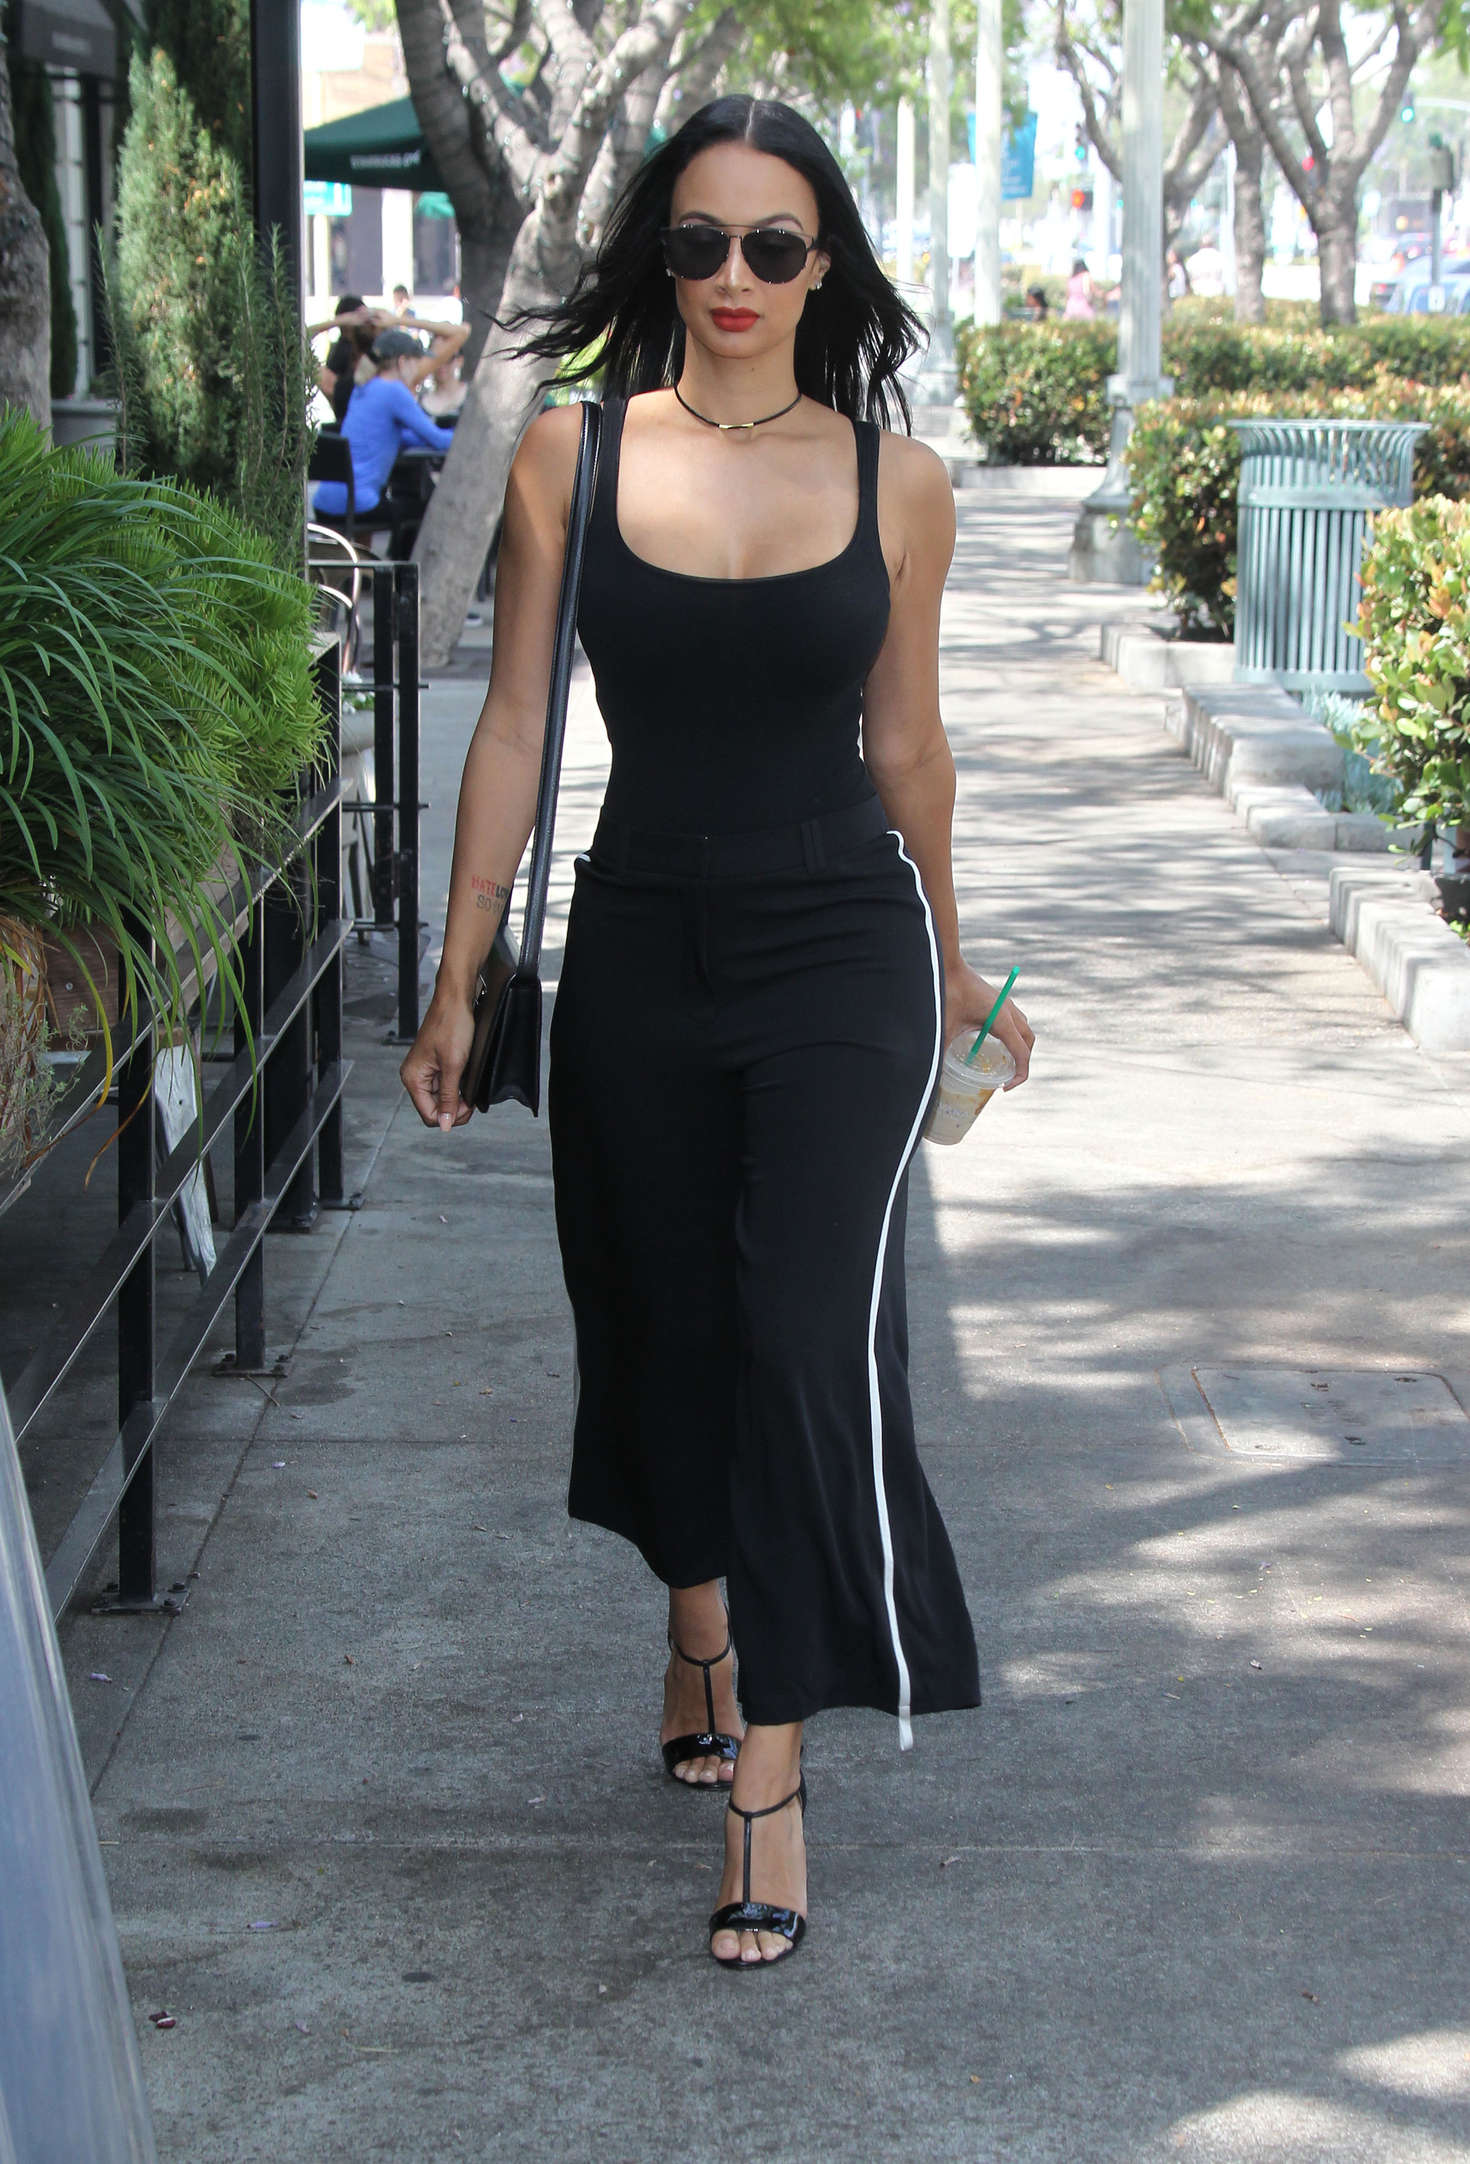 Draya Michele in Black -10 - GotCeleb